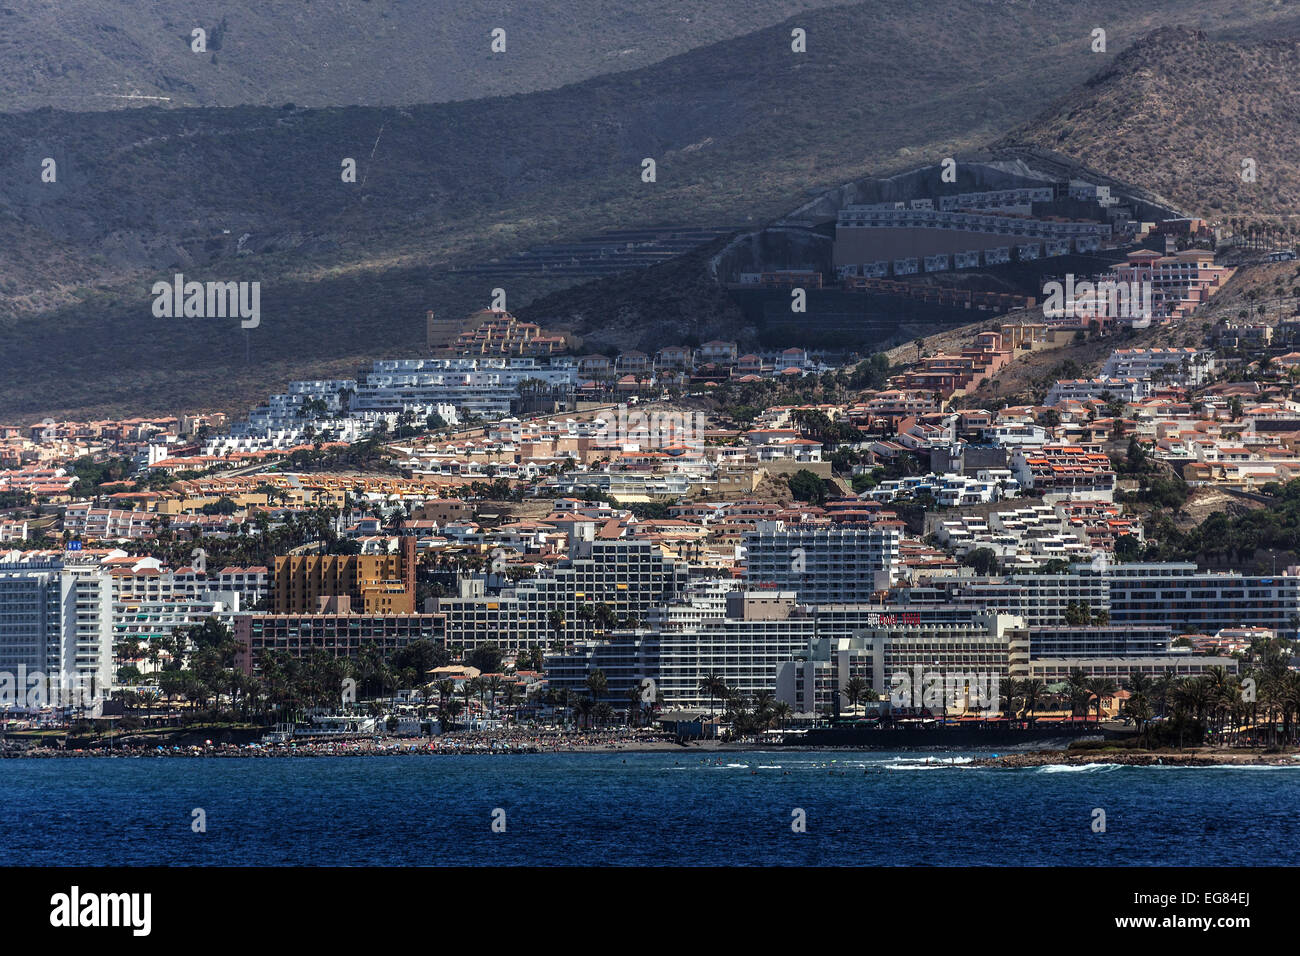 Hotel complexes, Los Cristianos, Tenerife, Canary Islands, Spain - Stock Image